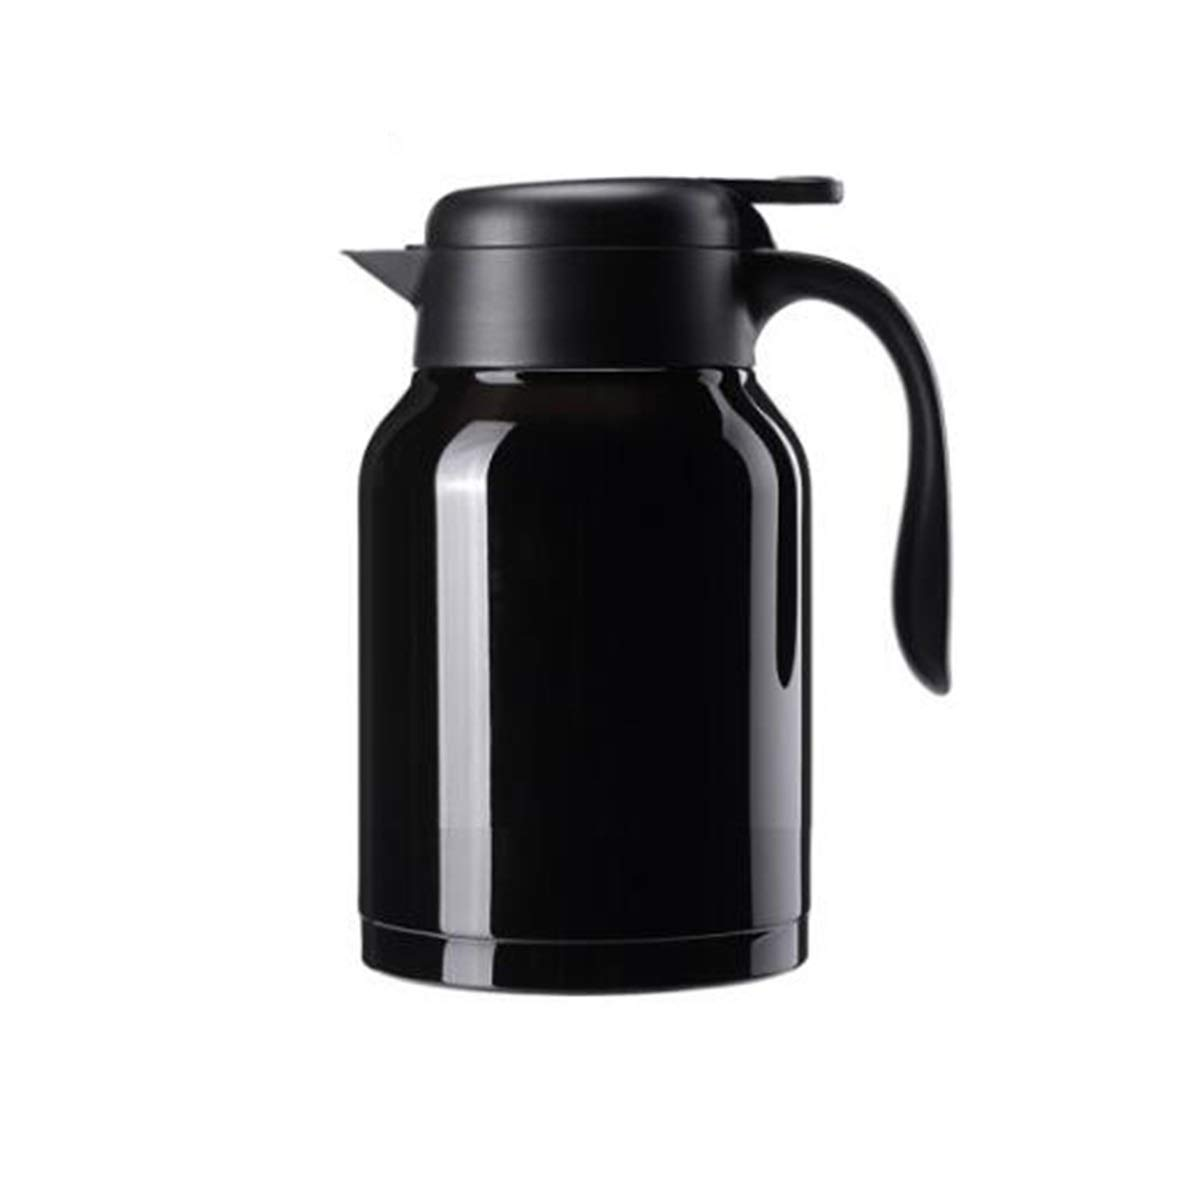 2.0L Insulated Kettle 1.5L GUYUEXUAN Kettle Kettle Coffee Insulation Pot Brown Household Thermos White and Durability Stainless Steel Insulated Pot